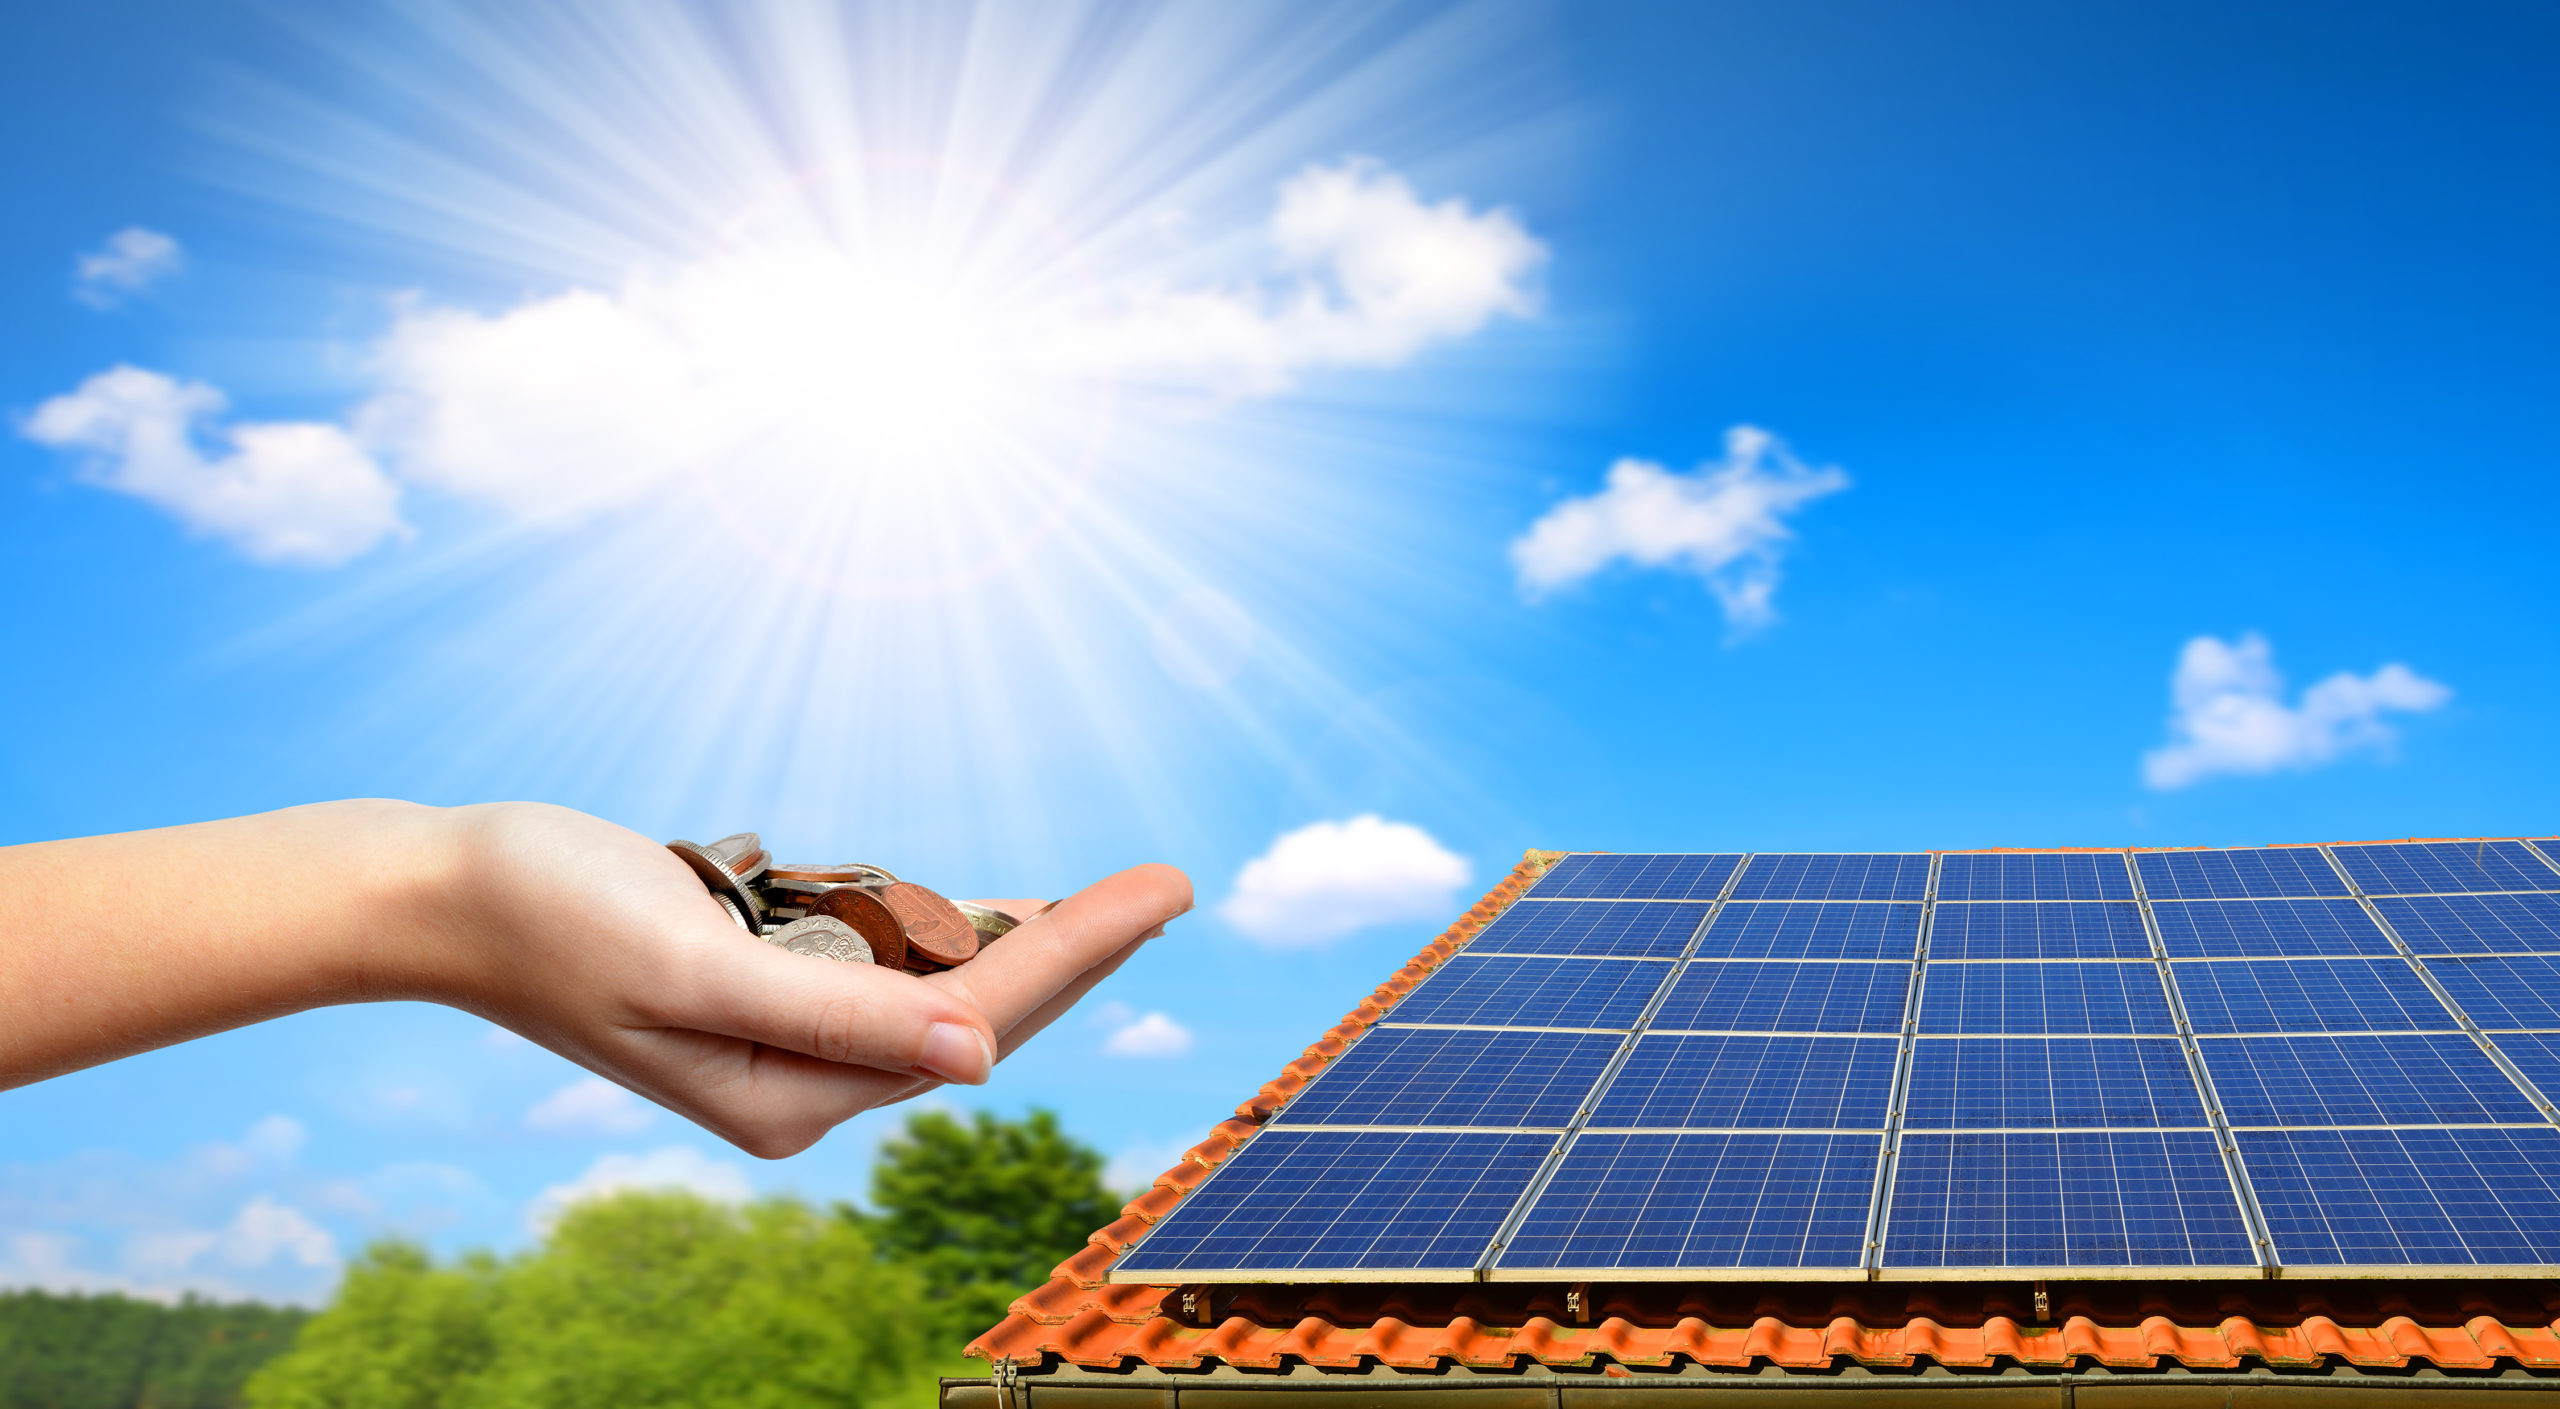 Solar panel on the roof of the house and coins in hand. The concept of money saving and clean energy.